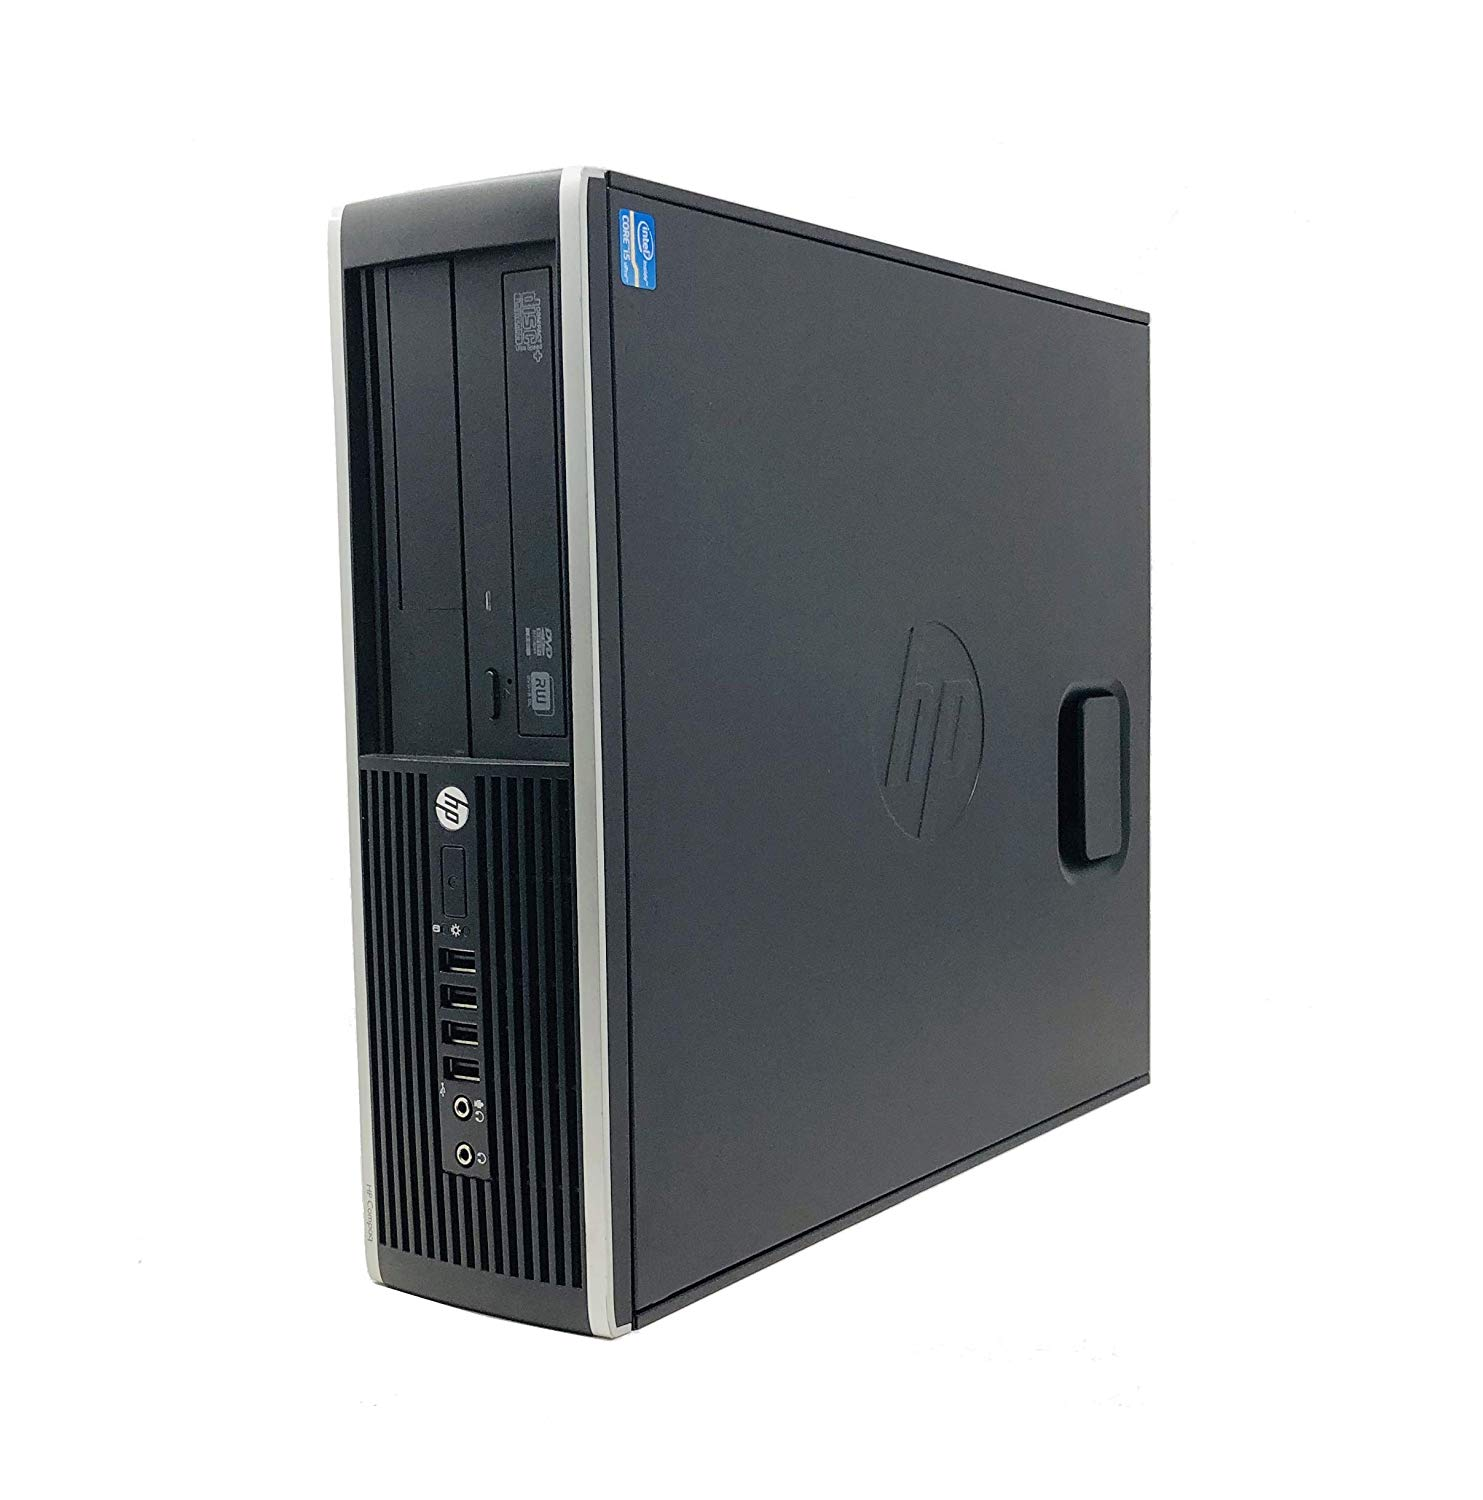 Hp Elite 8200 - Ordenador de sobremesa (<font><b>Intel</b></font> <font><b>i5</b></font>-<font><b>2400</b></font>, Sin Lector, 8GB de RAM, Disco SSD de 480GB , Windows 7 PRO ) - Negro (Re image